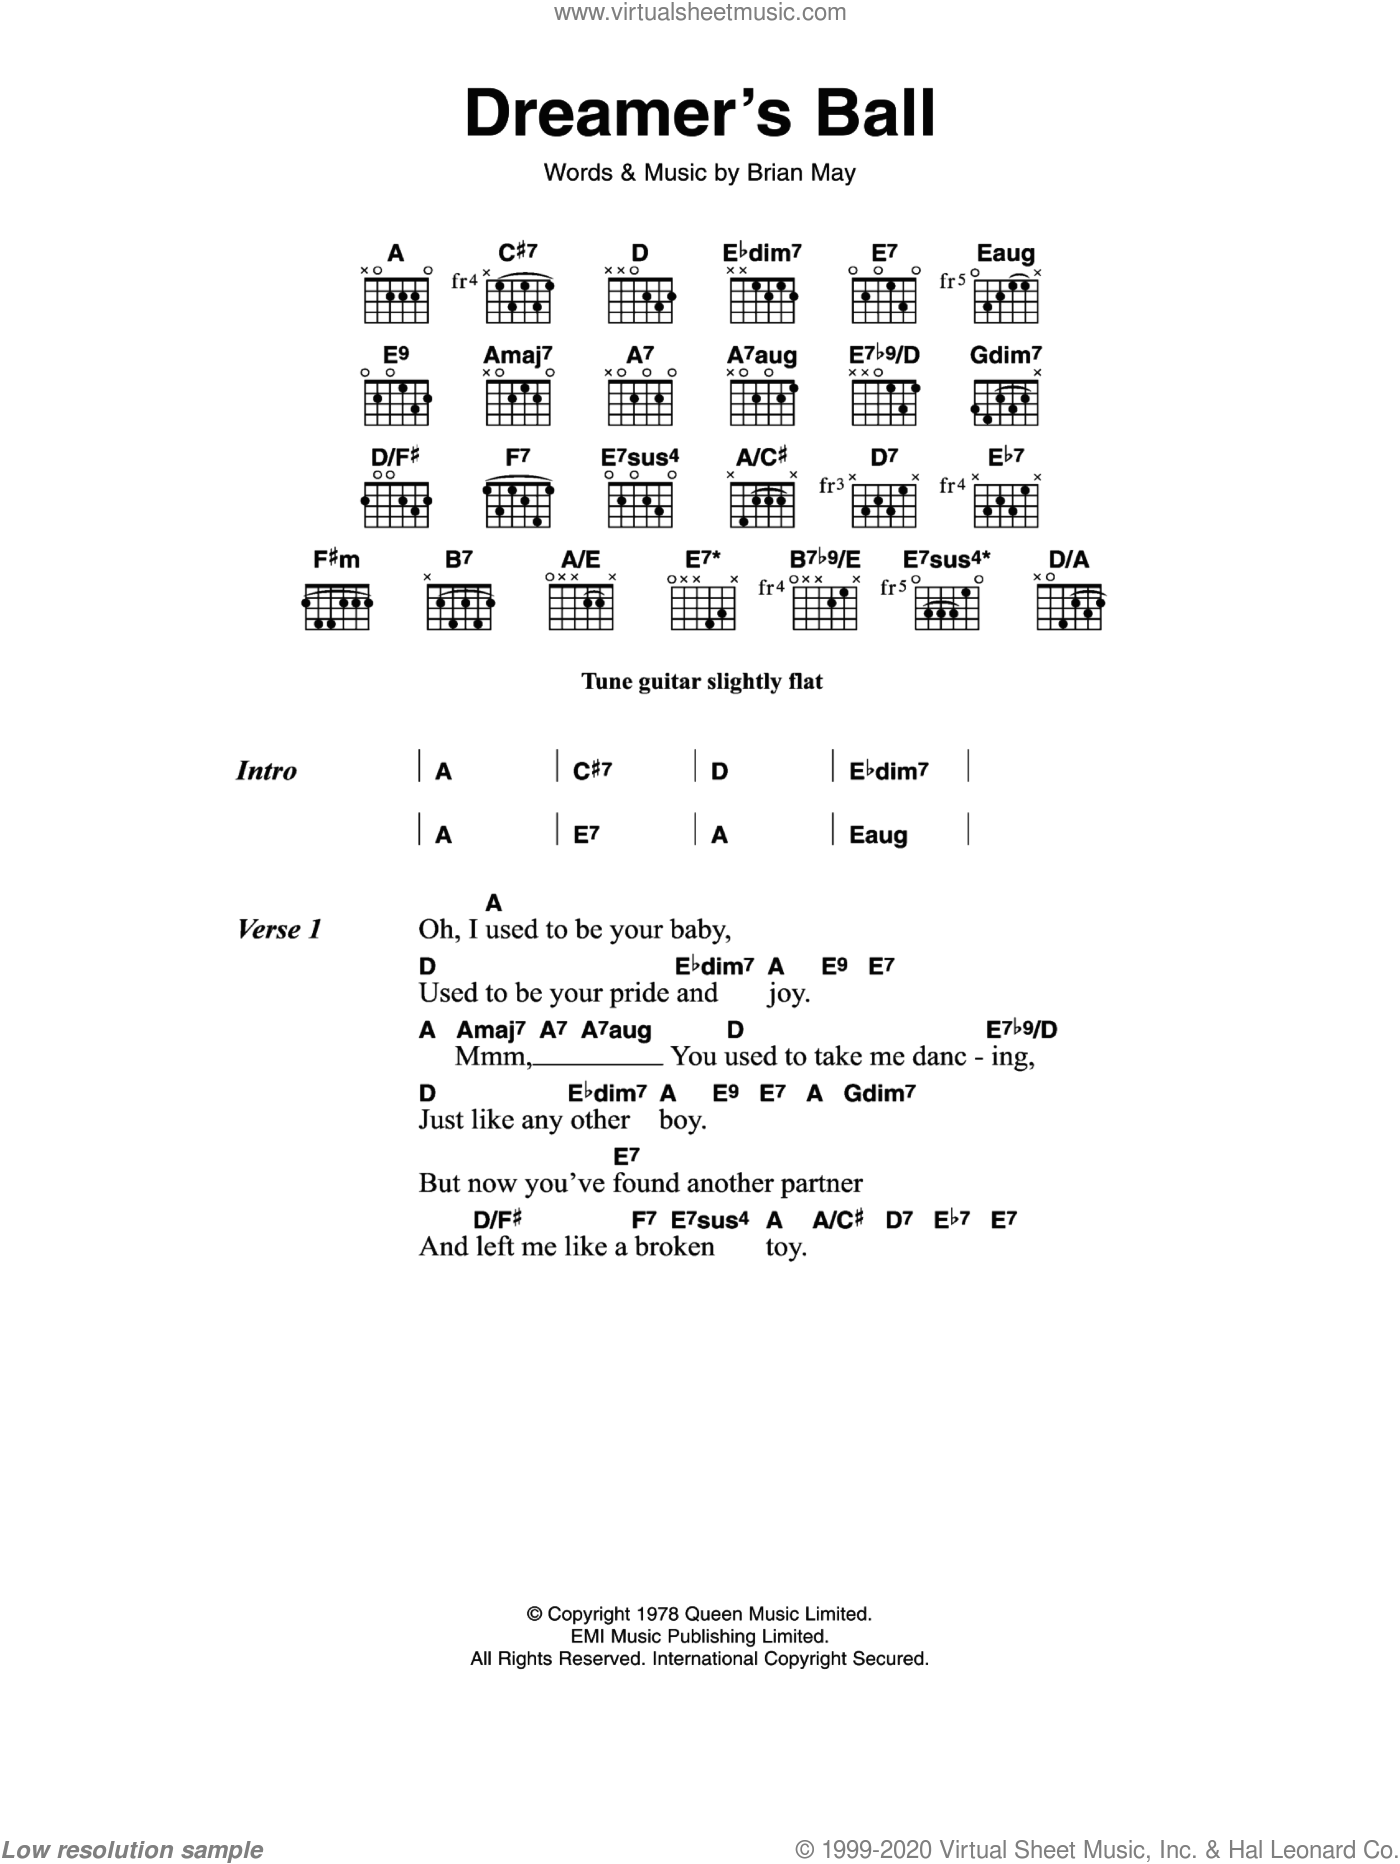 Dreamer's Ball sheet music for guitar (chords) by Brian May